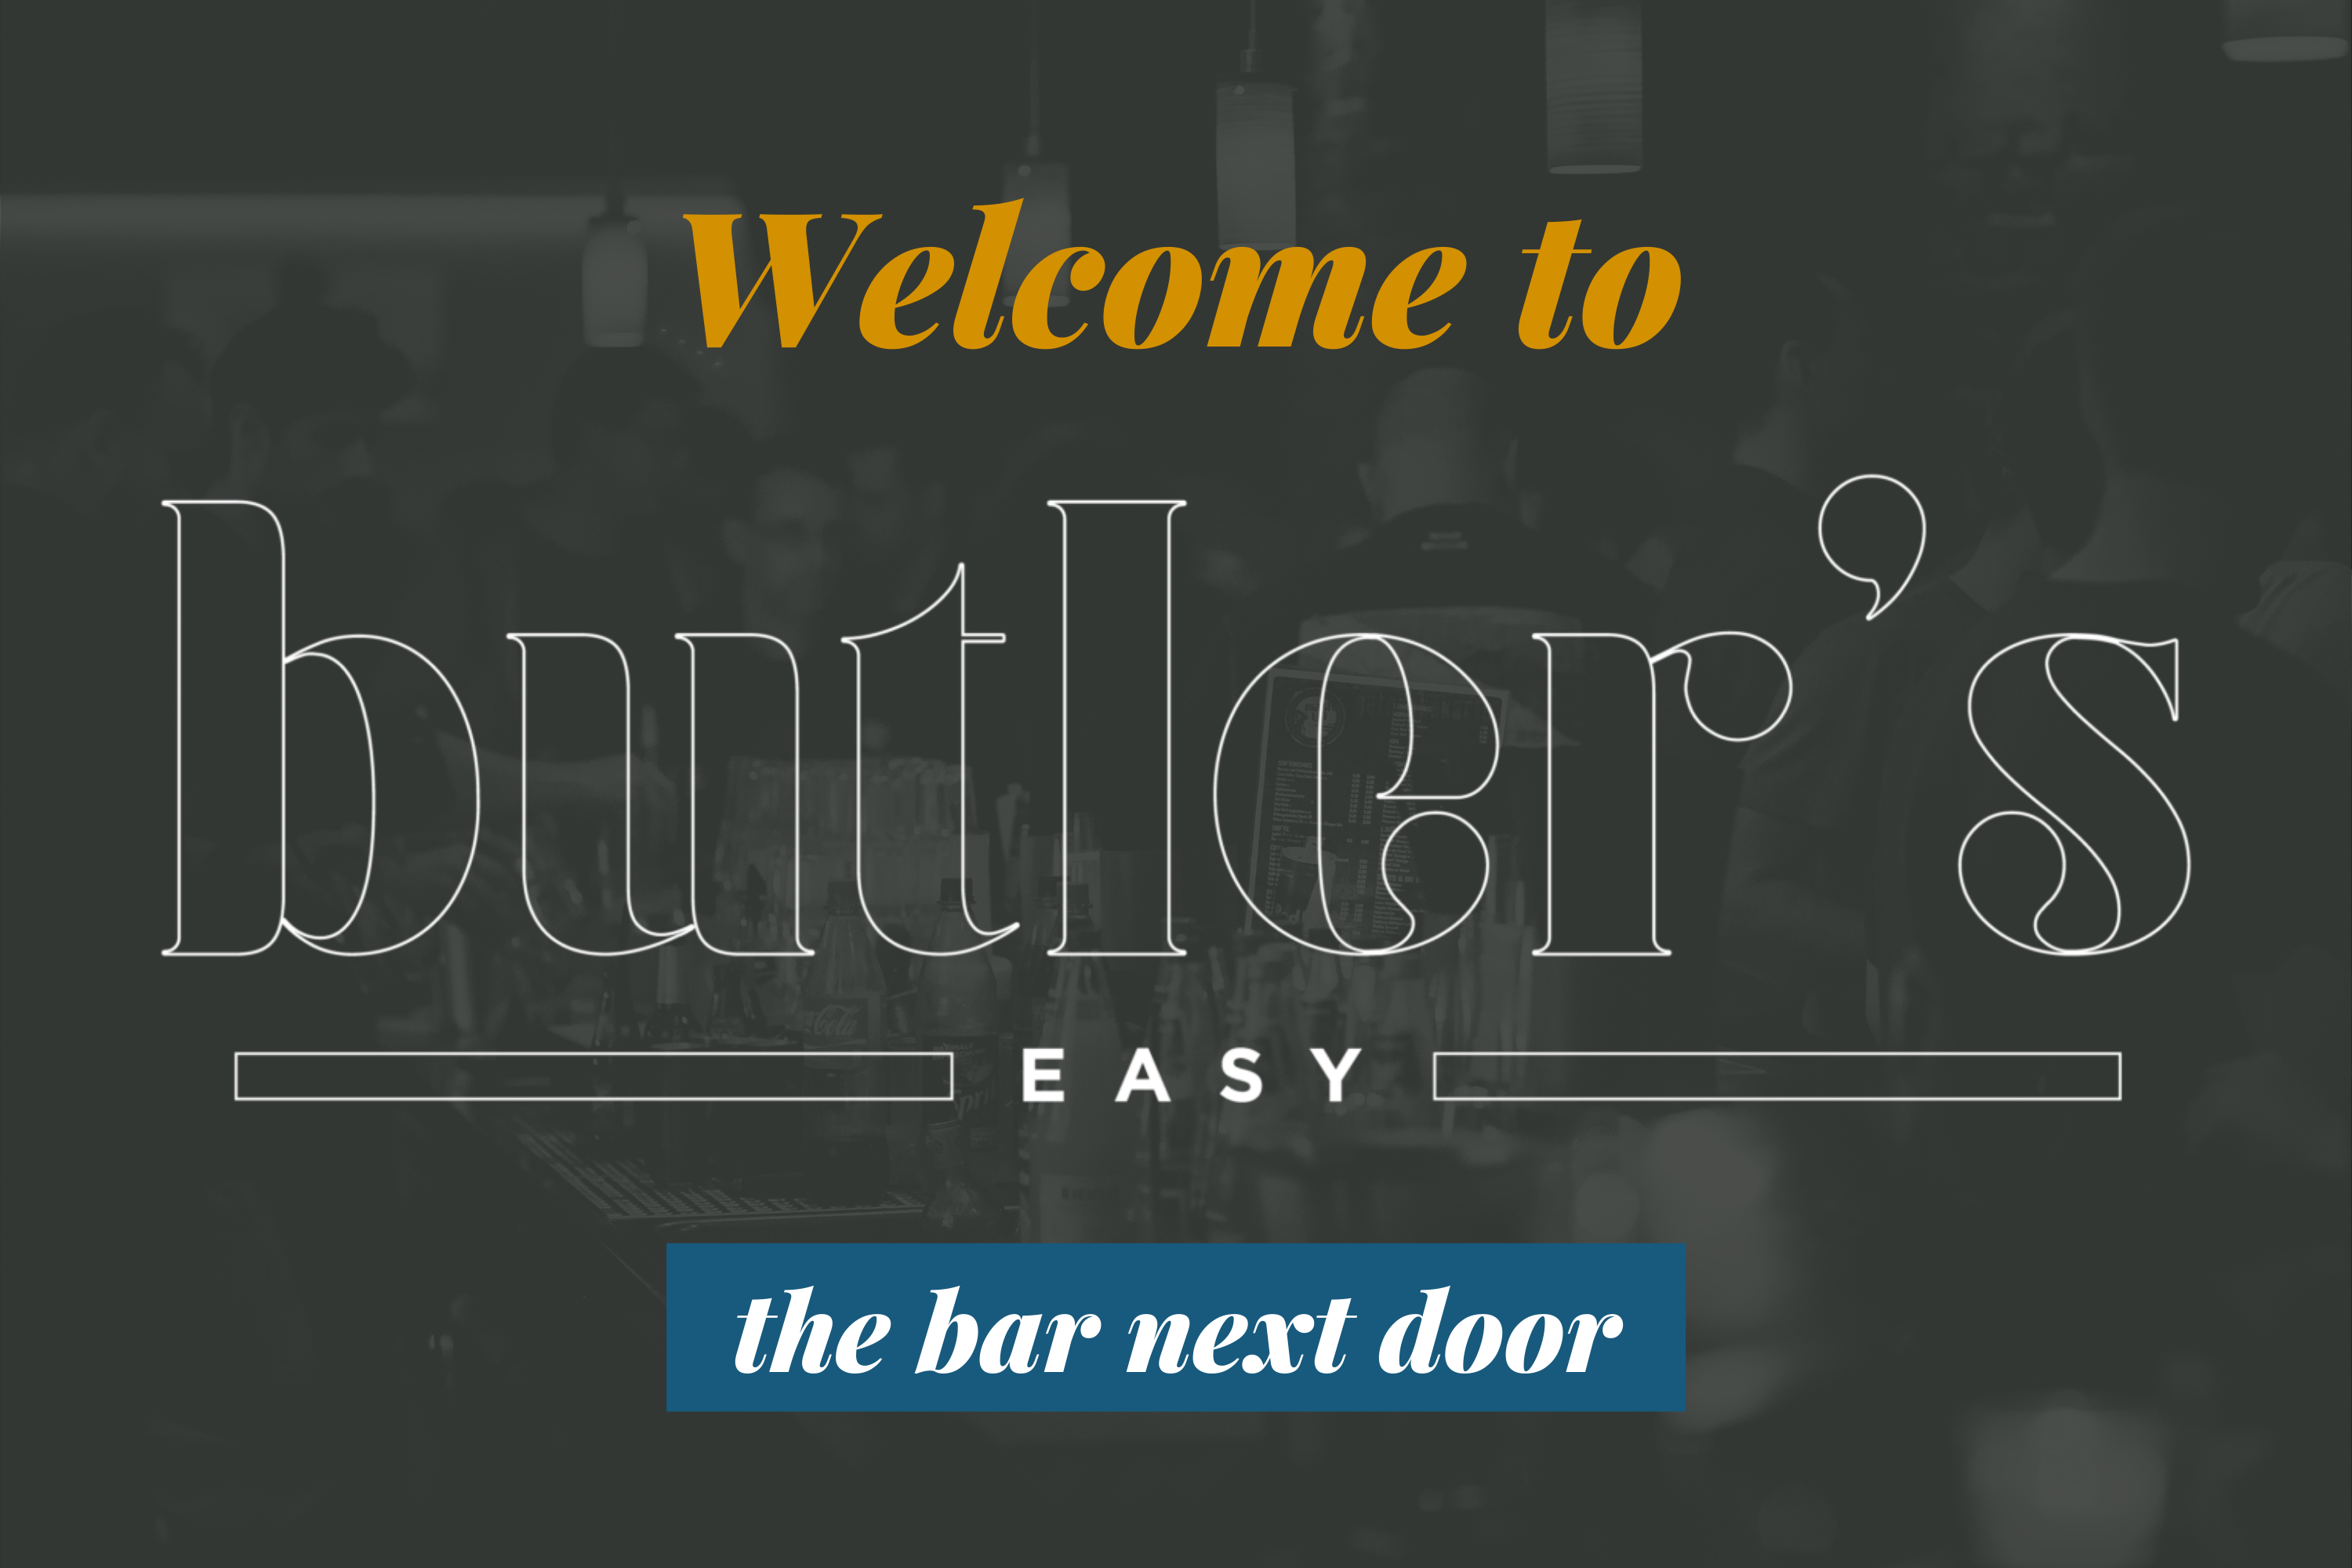 Welcome to Butler's Easy